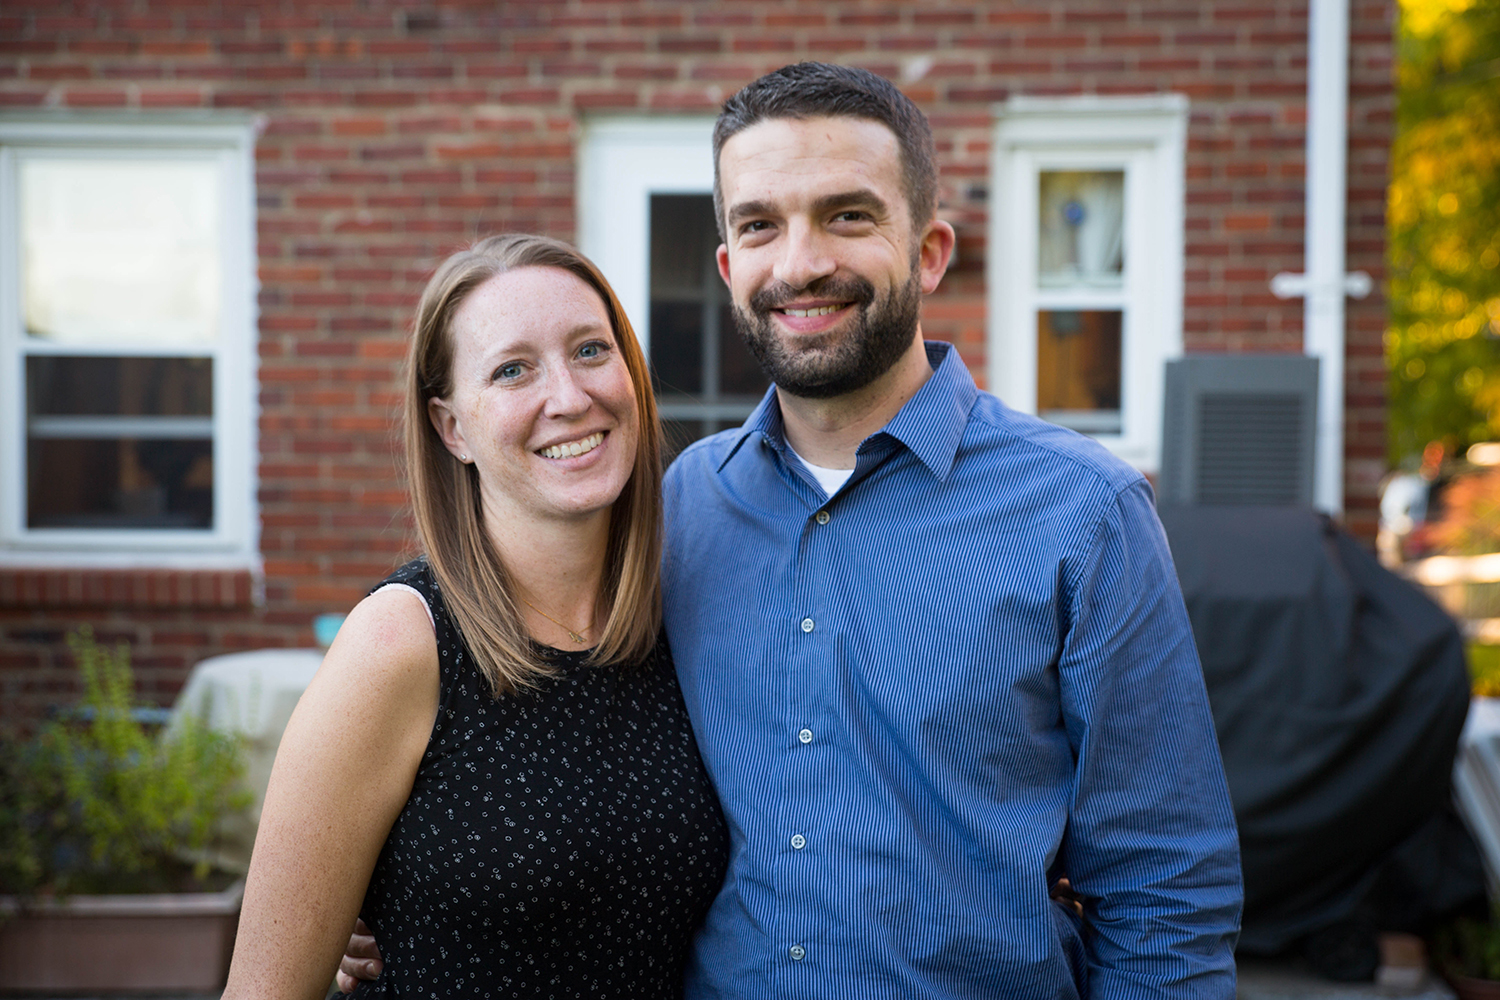 Jessica Varone, pictured here with her husband Dave Matlin, is president of the Stanton Heights Neighborhood Association and a program specialist at the VA Pittsburgh Healthcare System. Matlin is a senior project engineer at the Port Authority of Allegheny County. (Photo by Njaimeh Njie/PublicSource)